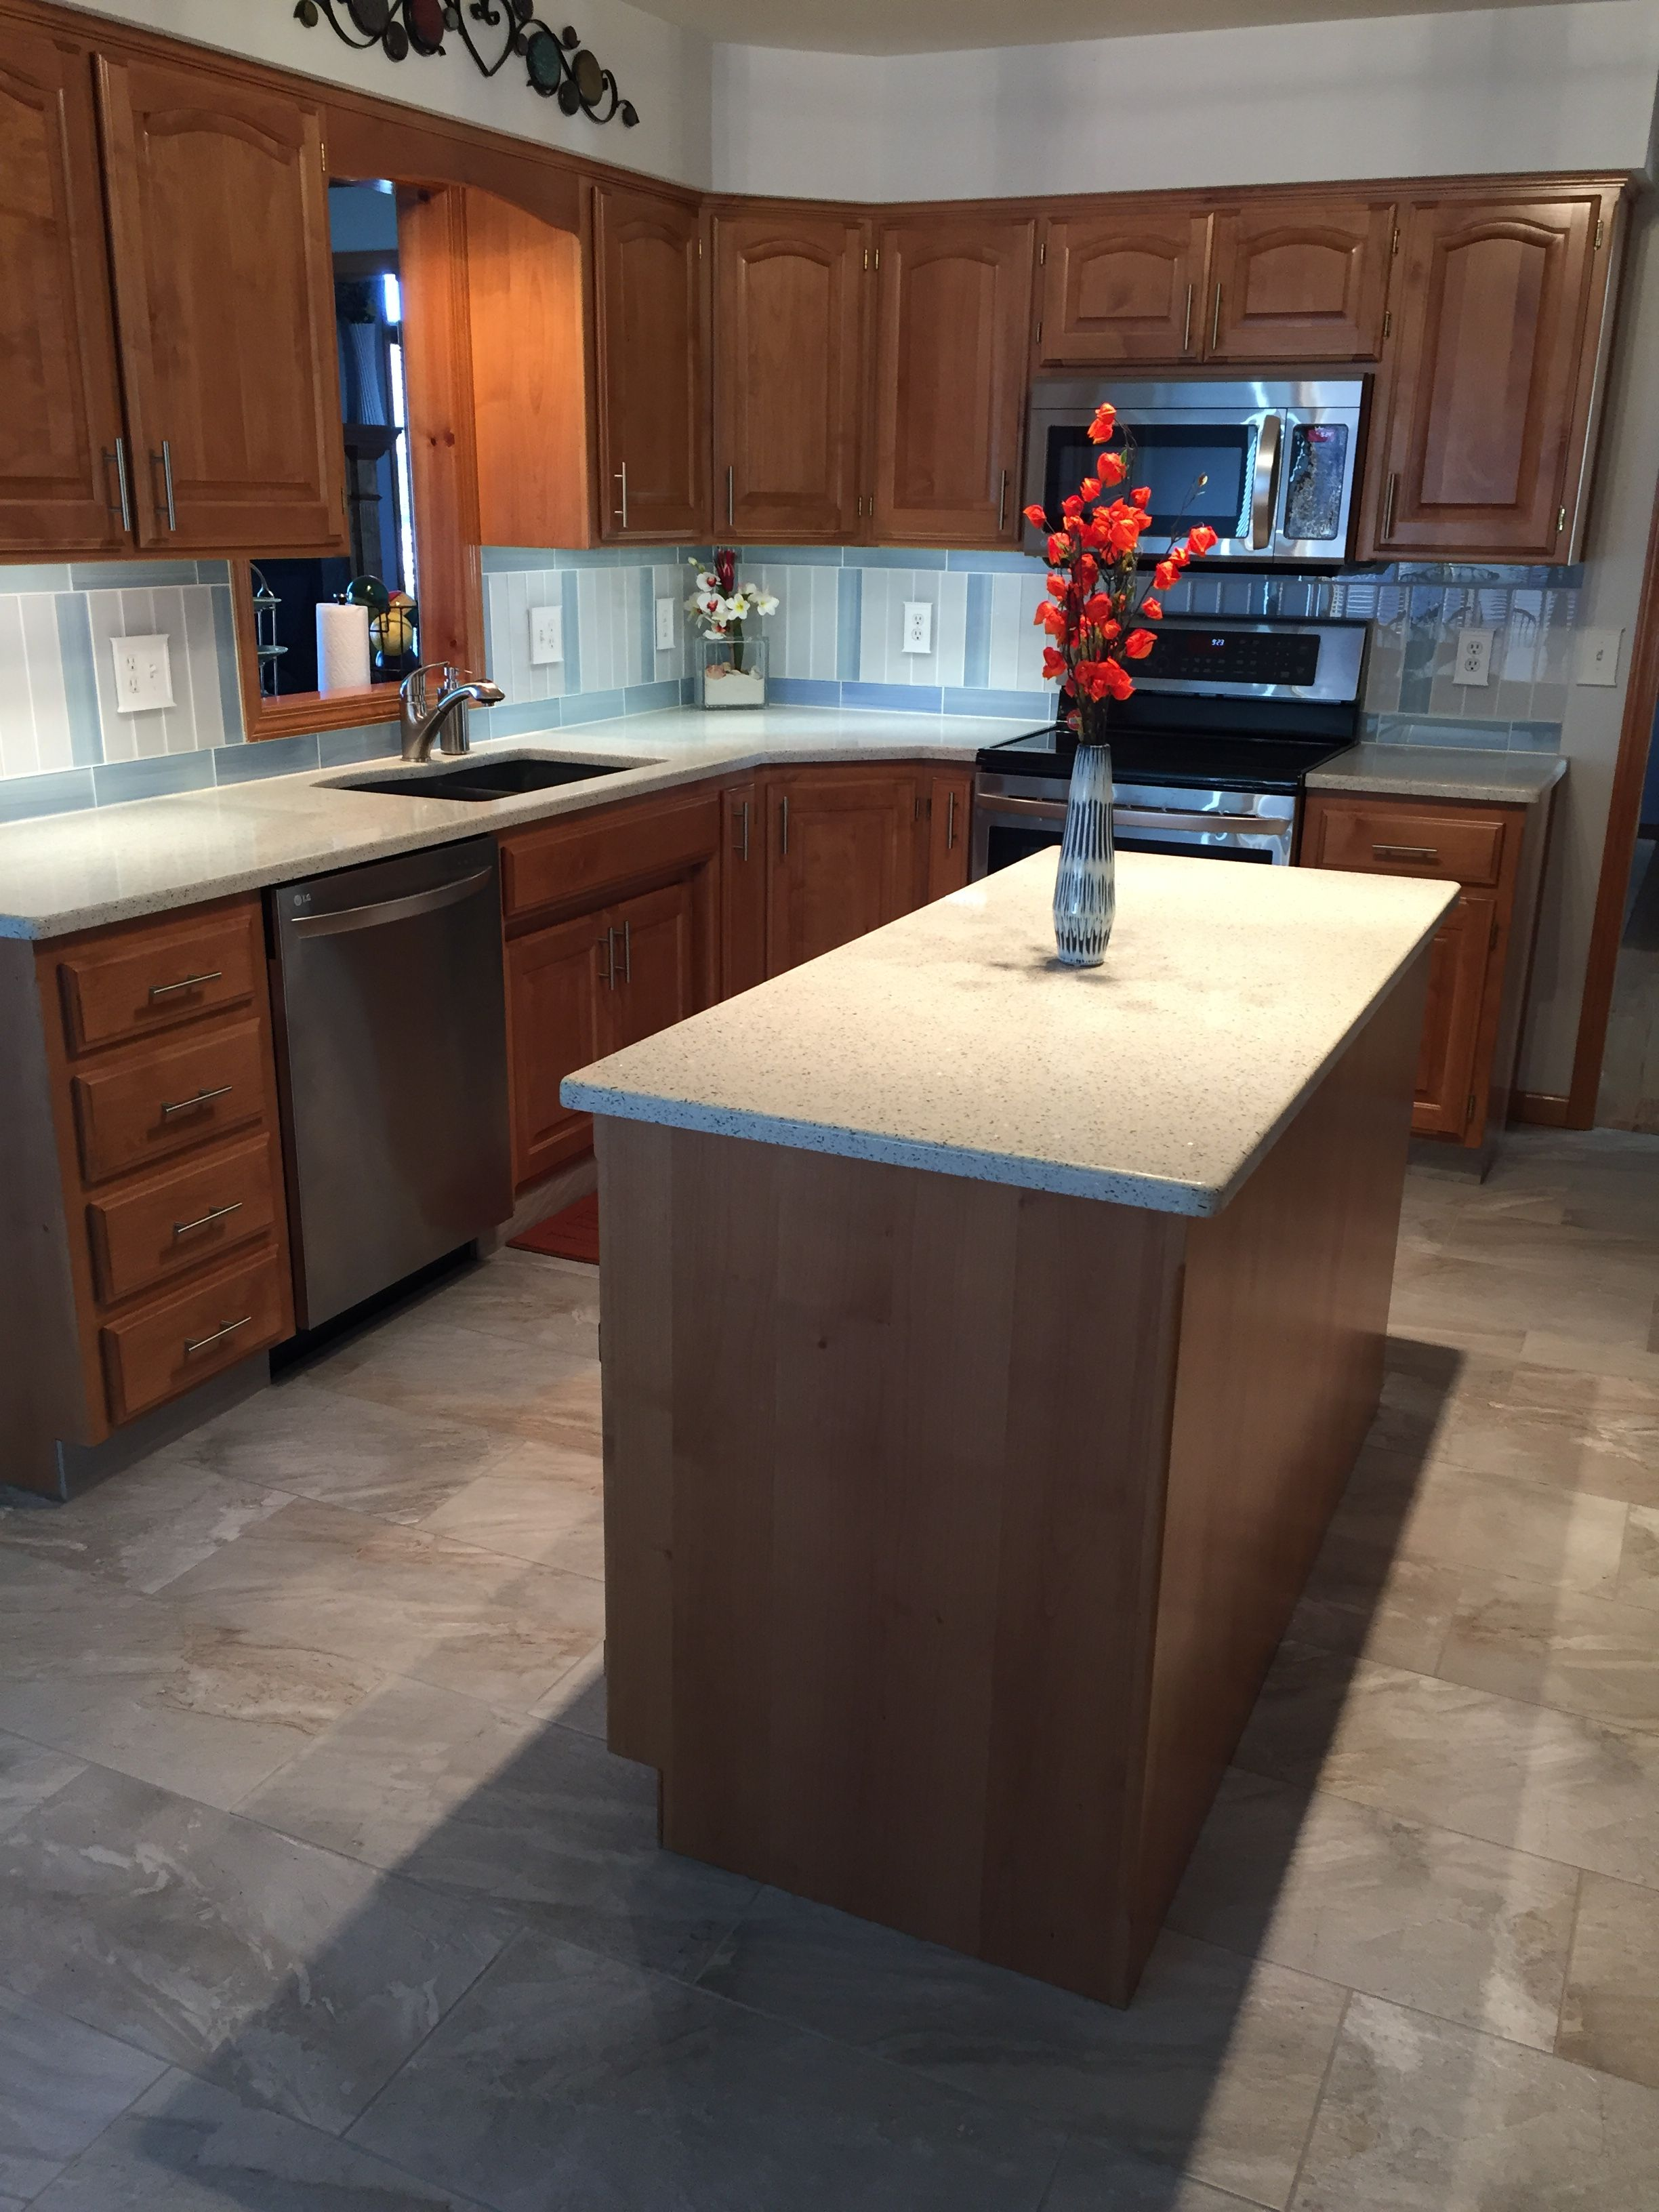 Countertops In This Kitchen Are Geos Recycled Glass Set In